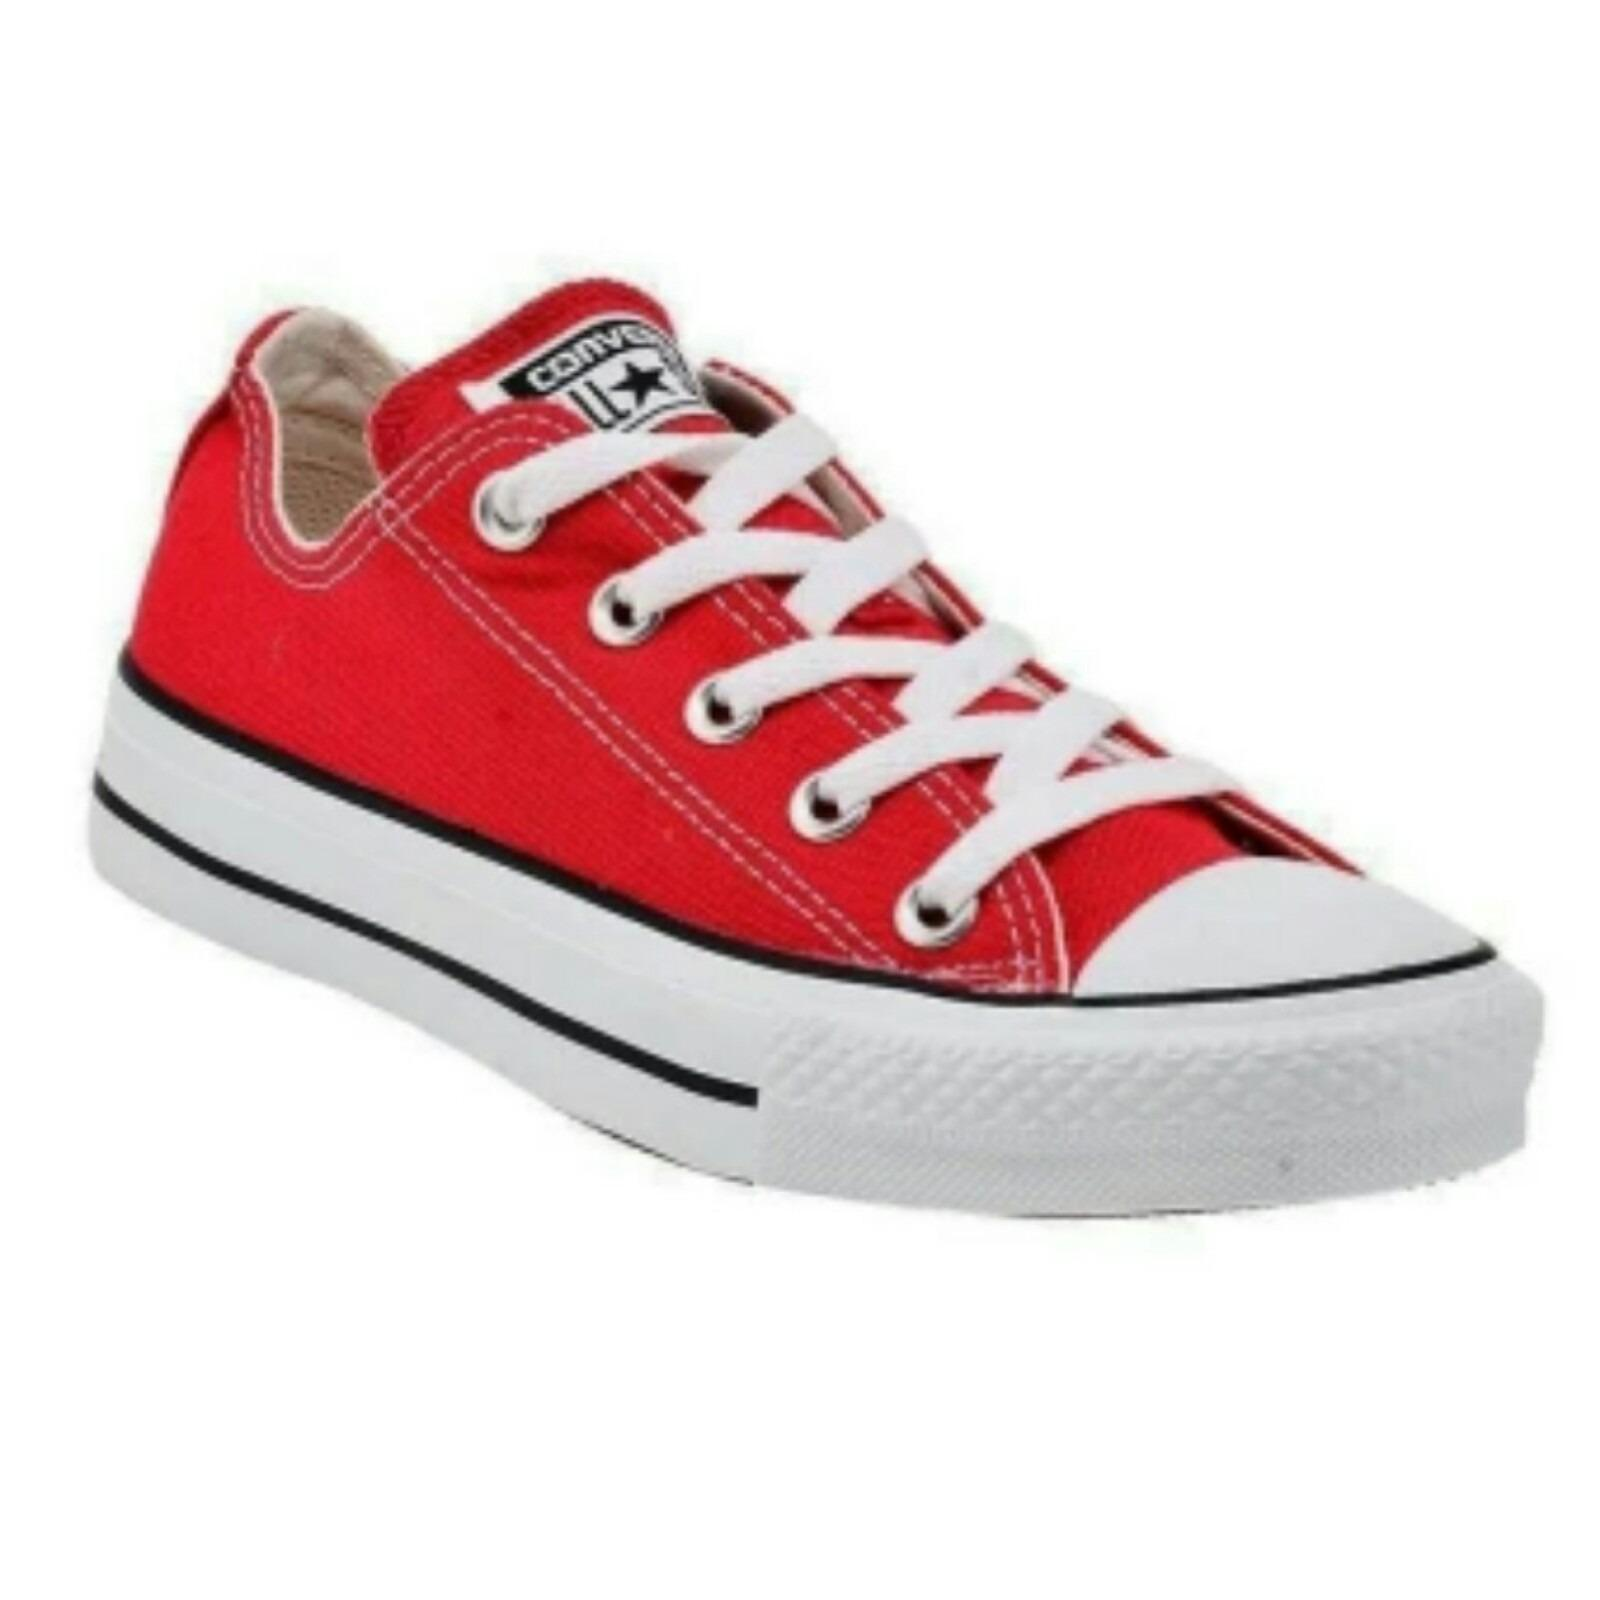 Sneakers Converse All Star Ox Classic Canvas Low - Red (Merah)